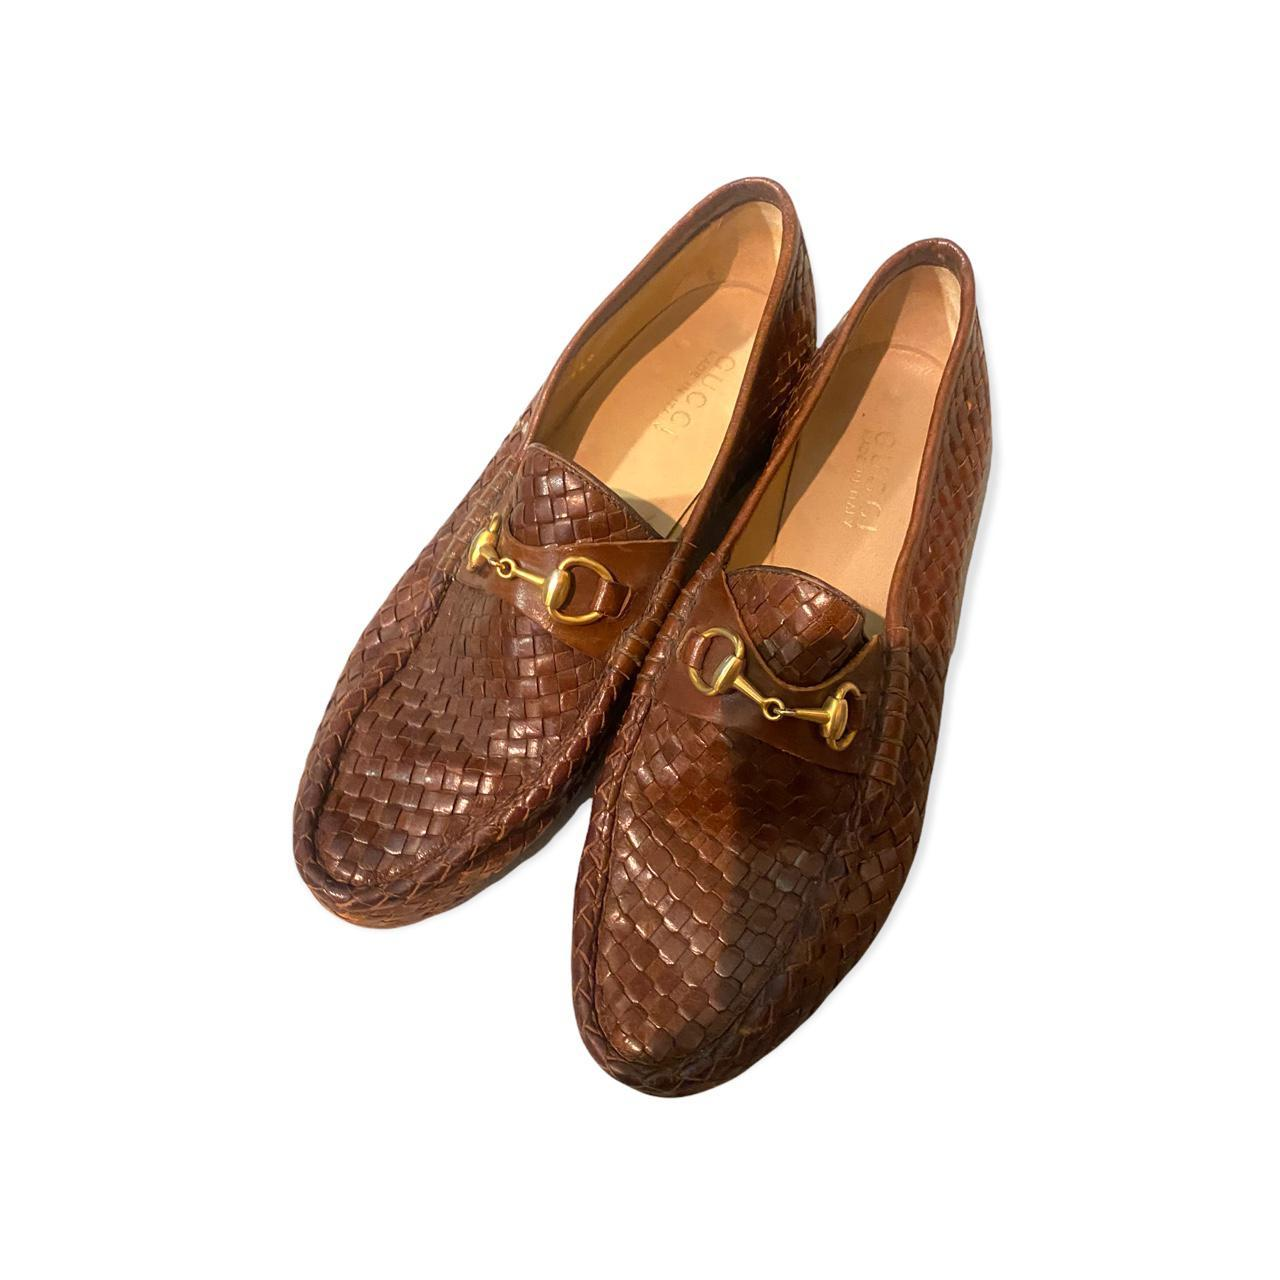 Product Image 1 - Vintage Gucci loafers in great